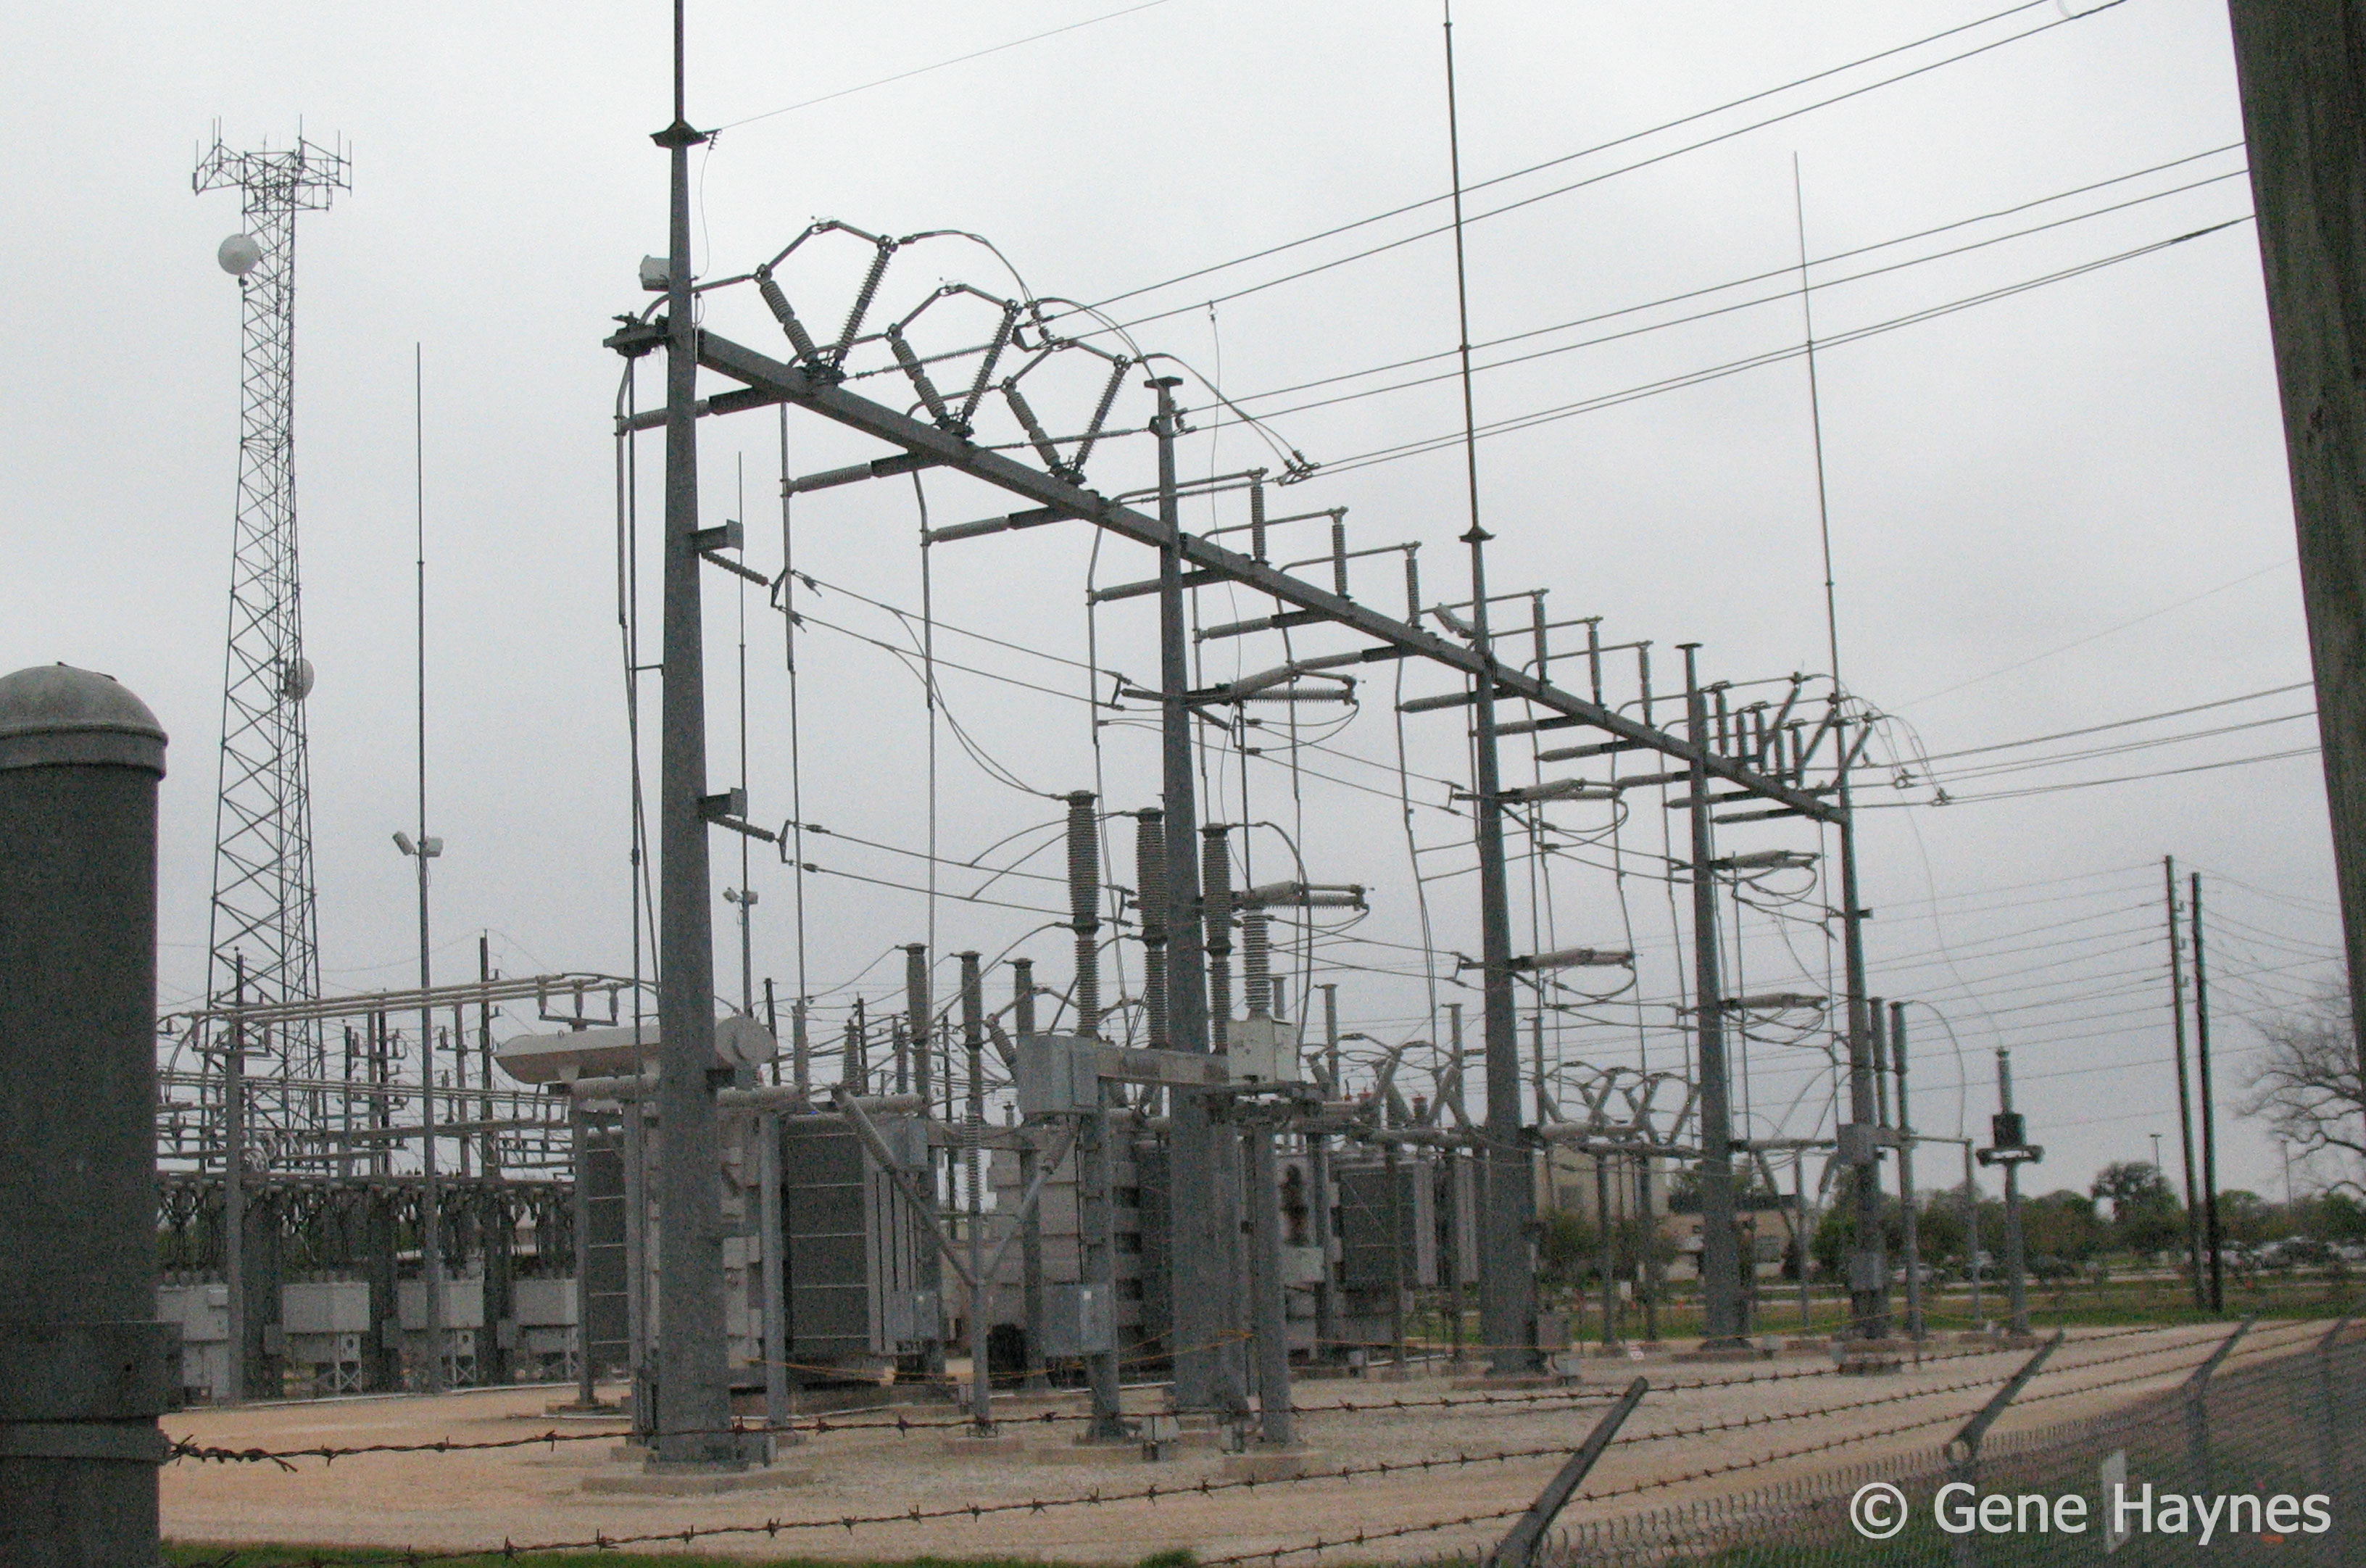 What Is 3 Phase Electric Heating Element With 240 Volts And The Timer Buzzer 120 Substation Might Receive 500000 From Generator Reduces Voltage Sends Out On Several Lower Lines